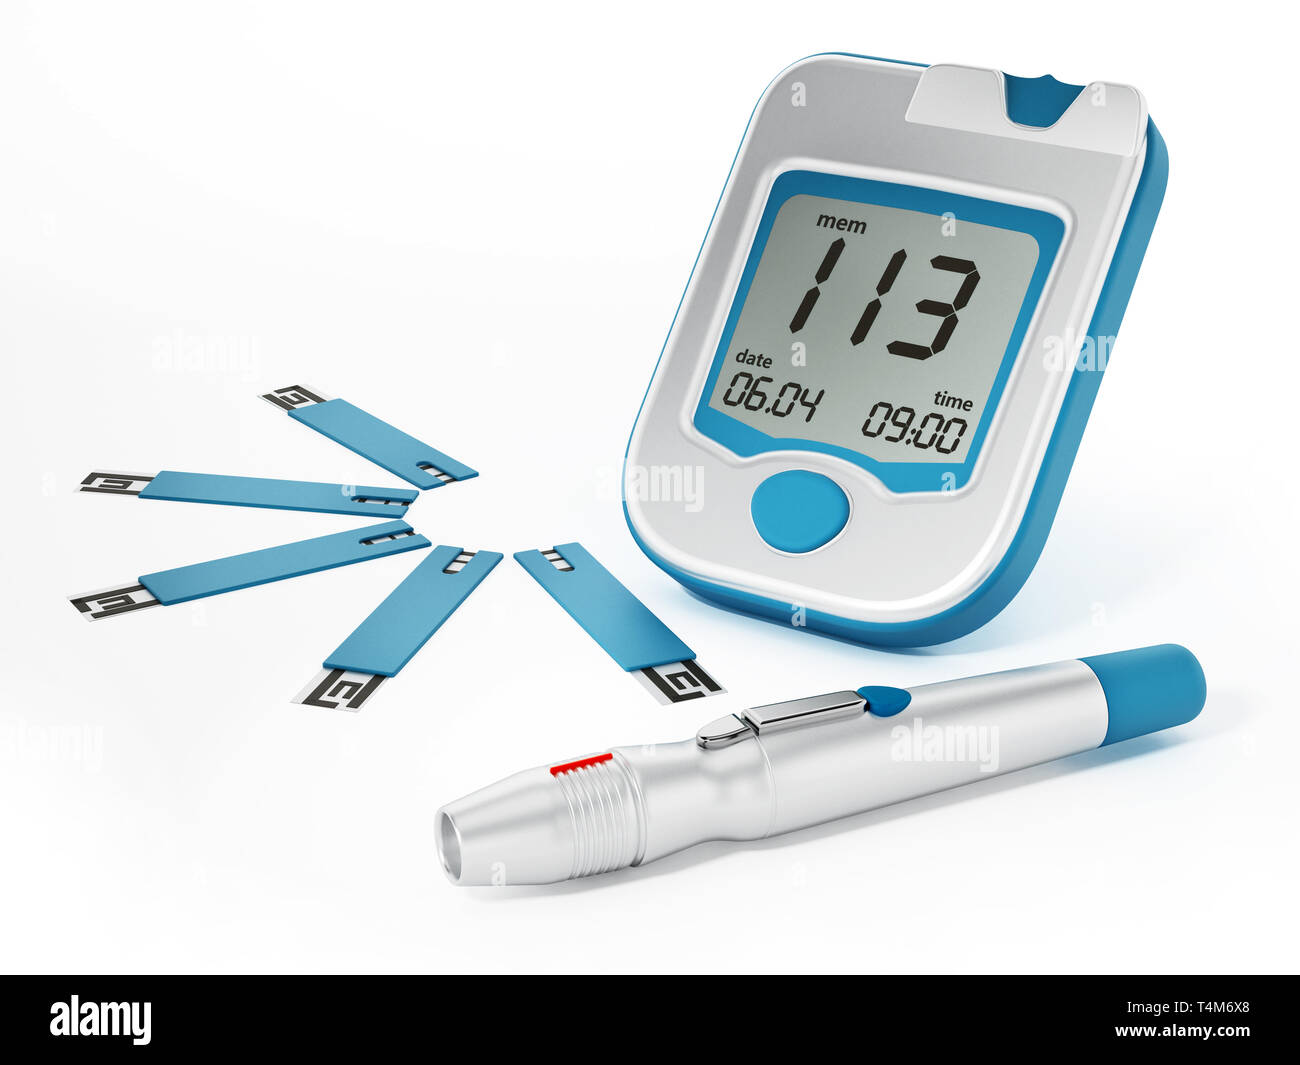 Blood glucose meter with strips isolated on white background. 3D illustration. - Stock Image